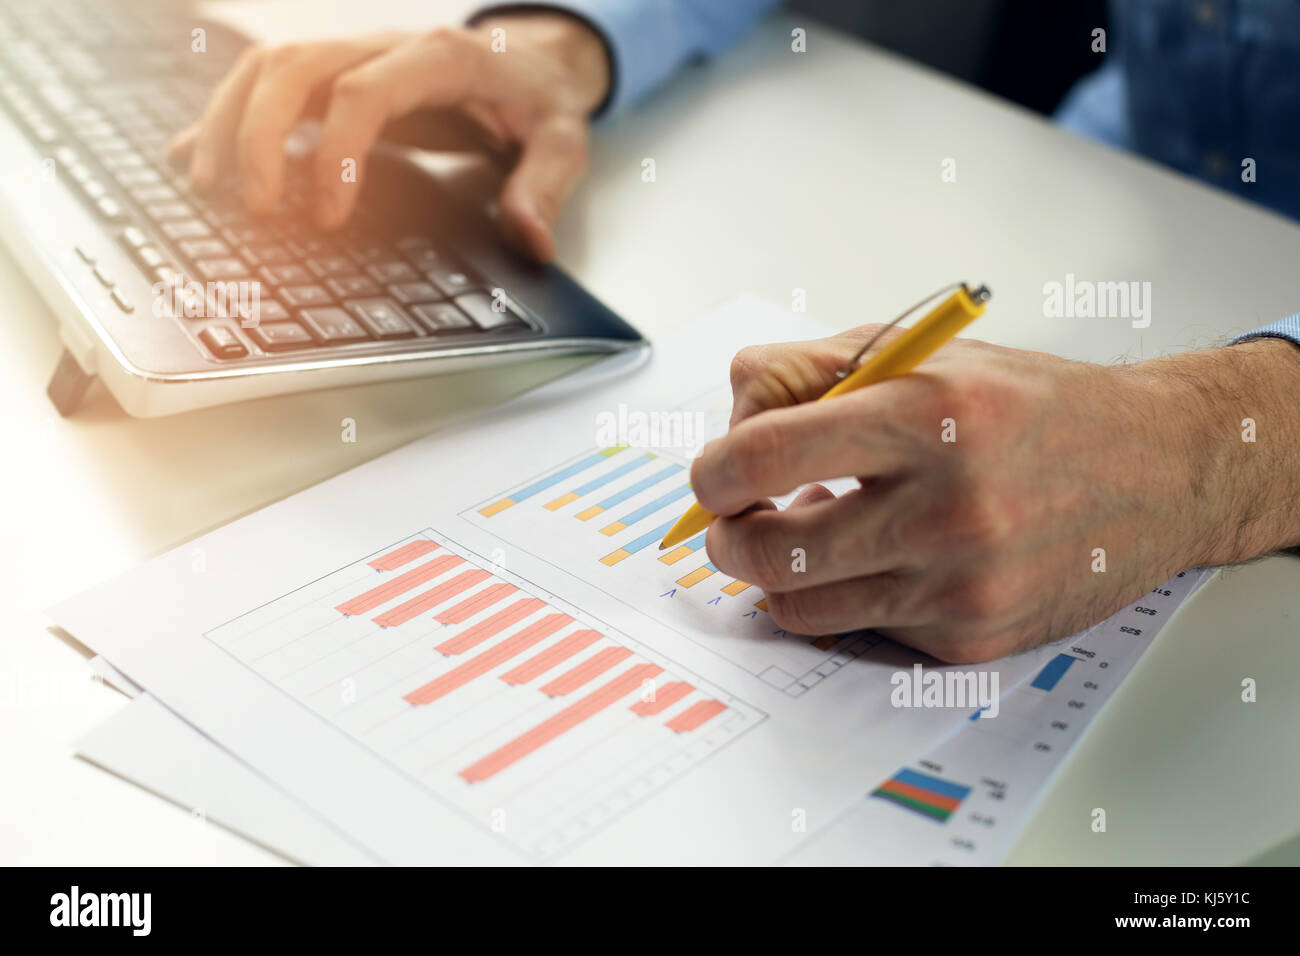 office clerk working with statistical reports and entering data into a computer - Stock Image